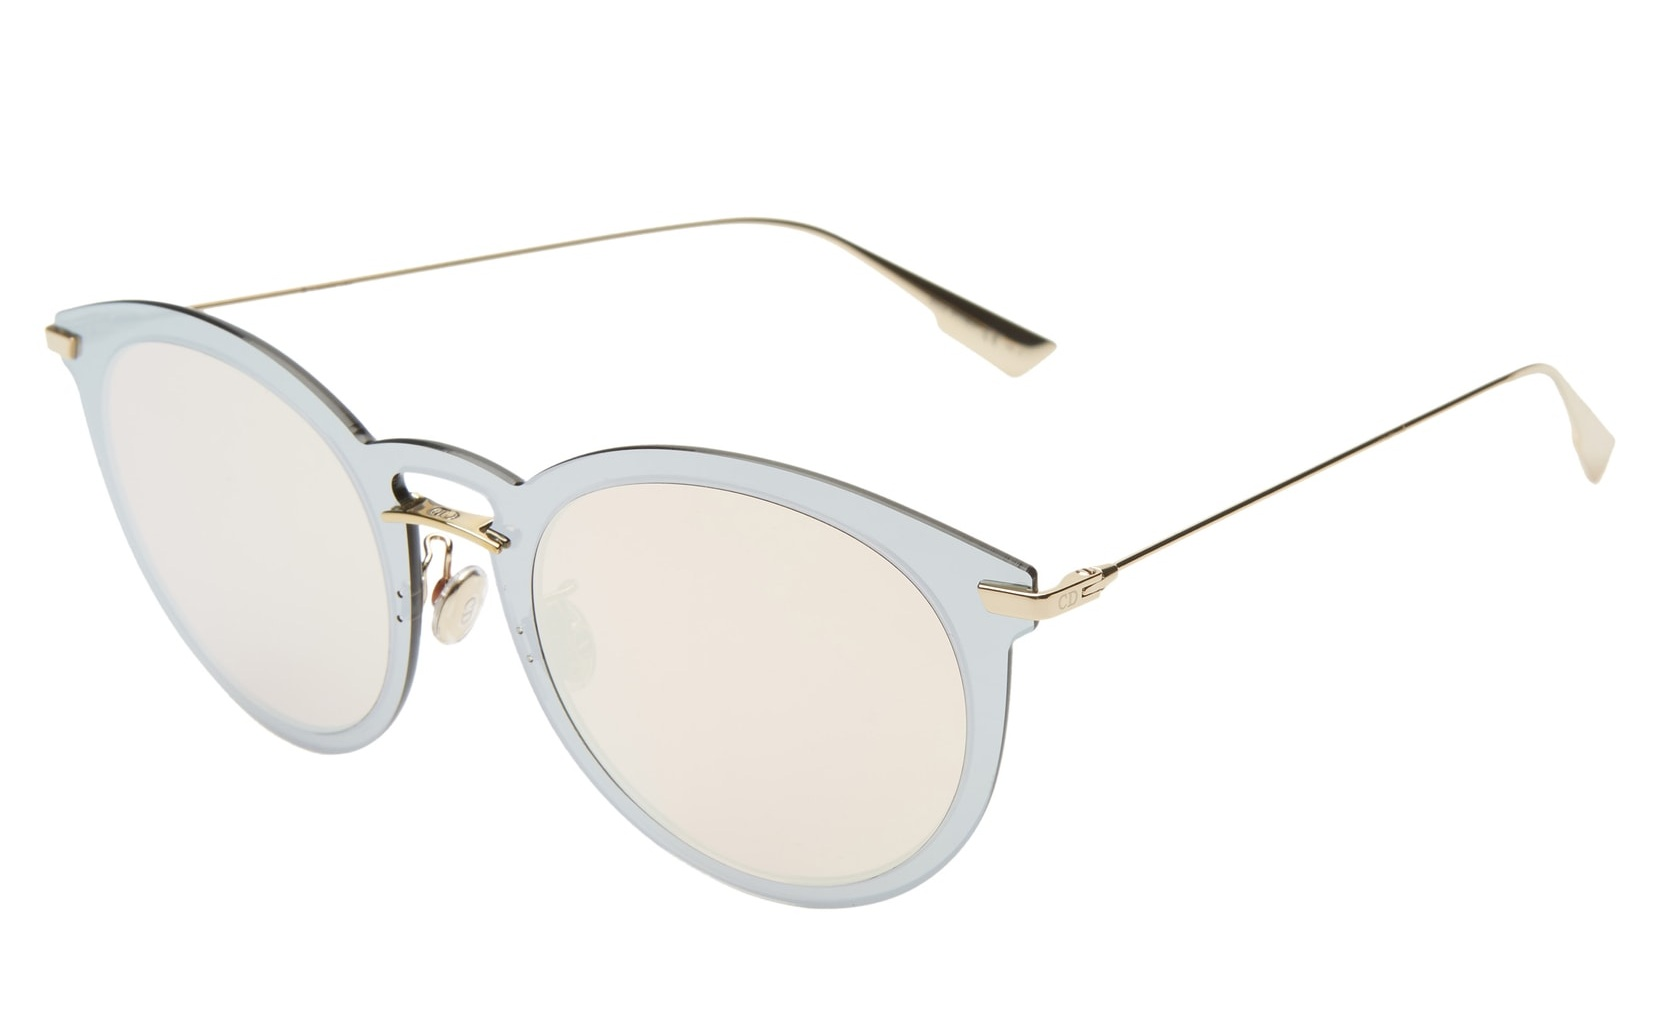 UltimeF 53mm Round Aviator Sunglasses DIOR